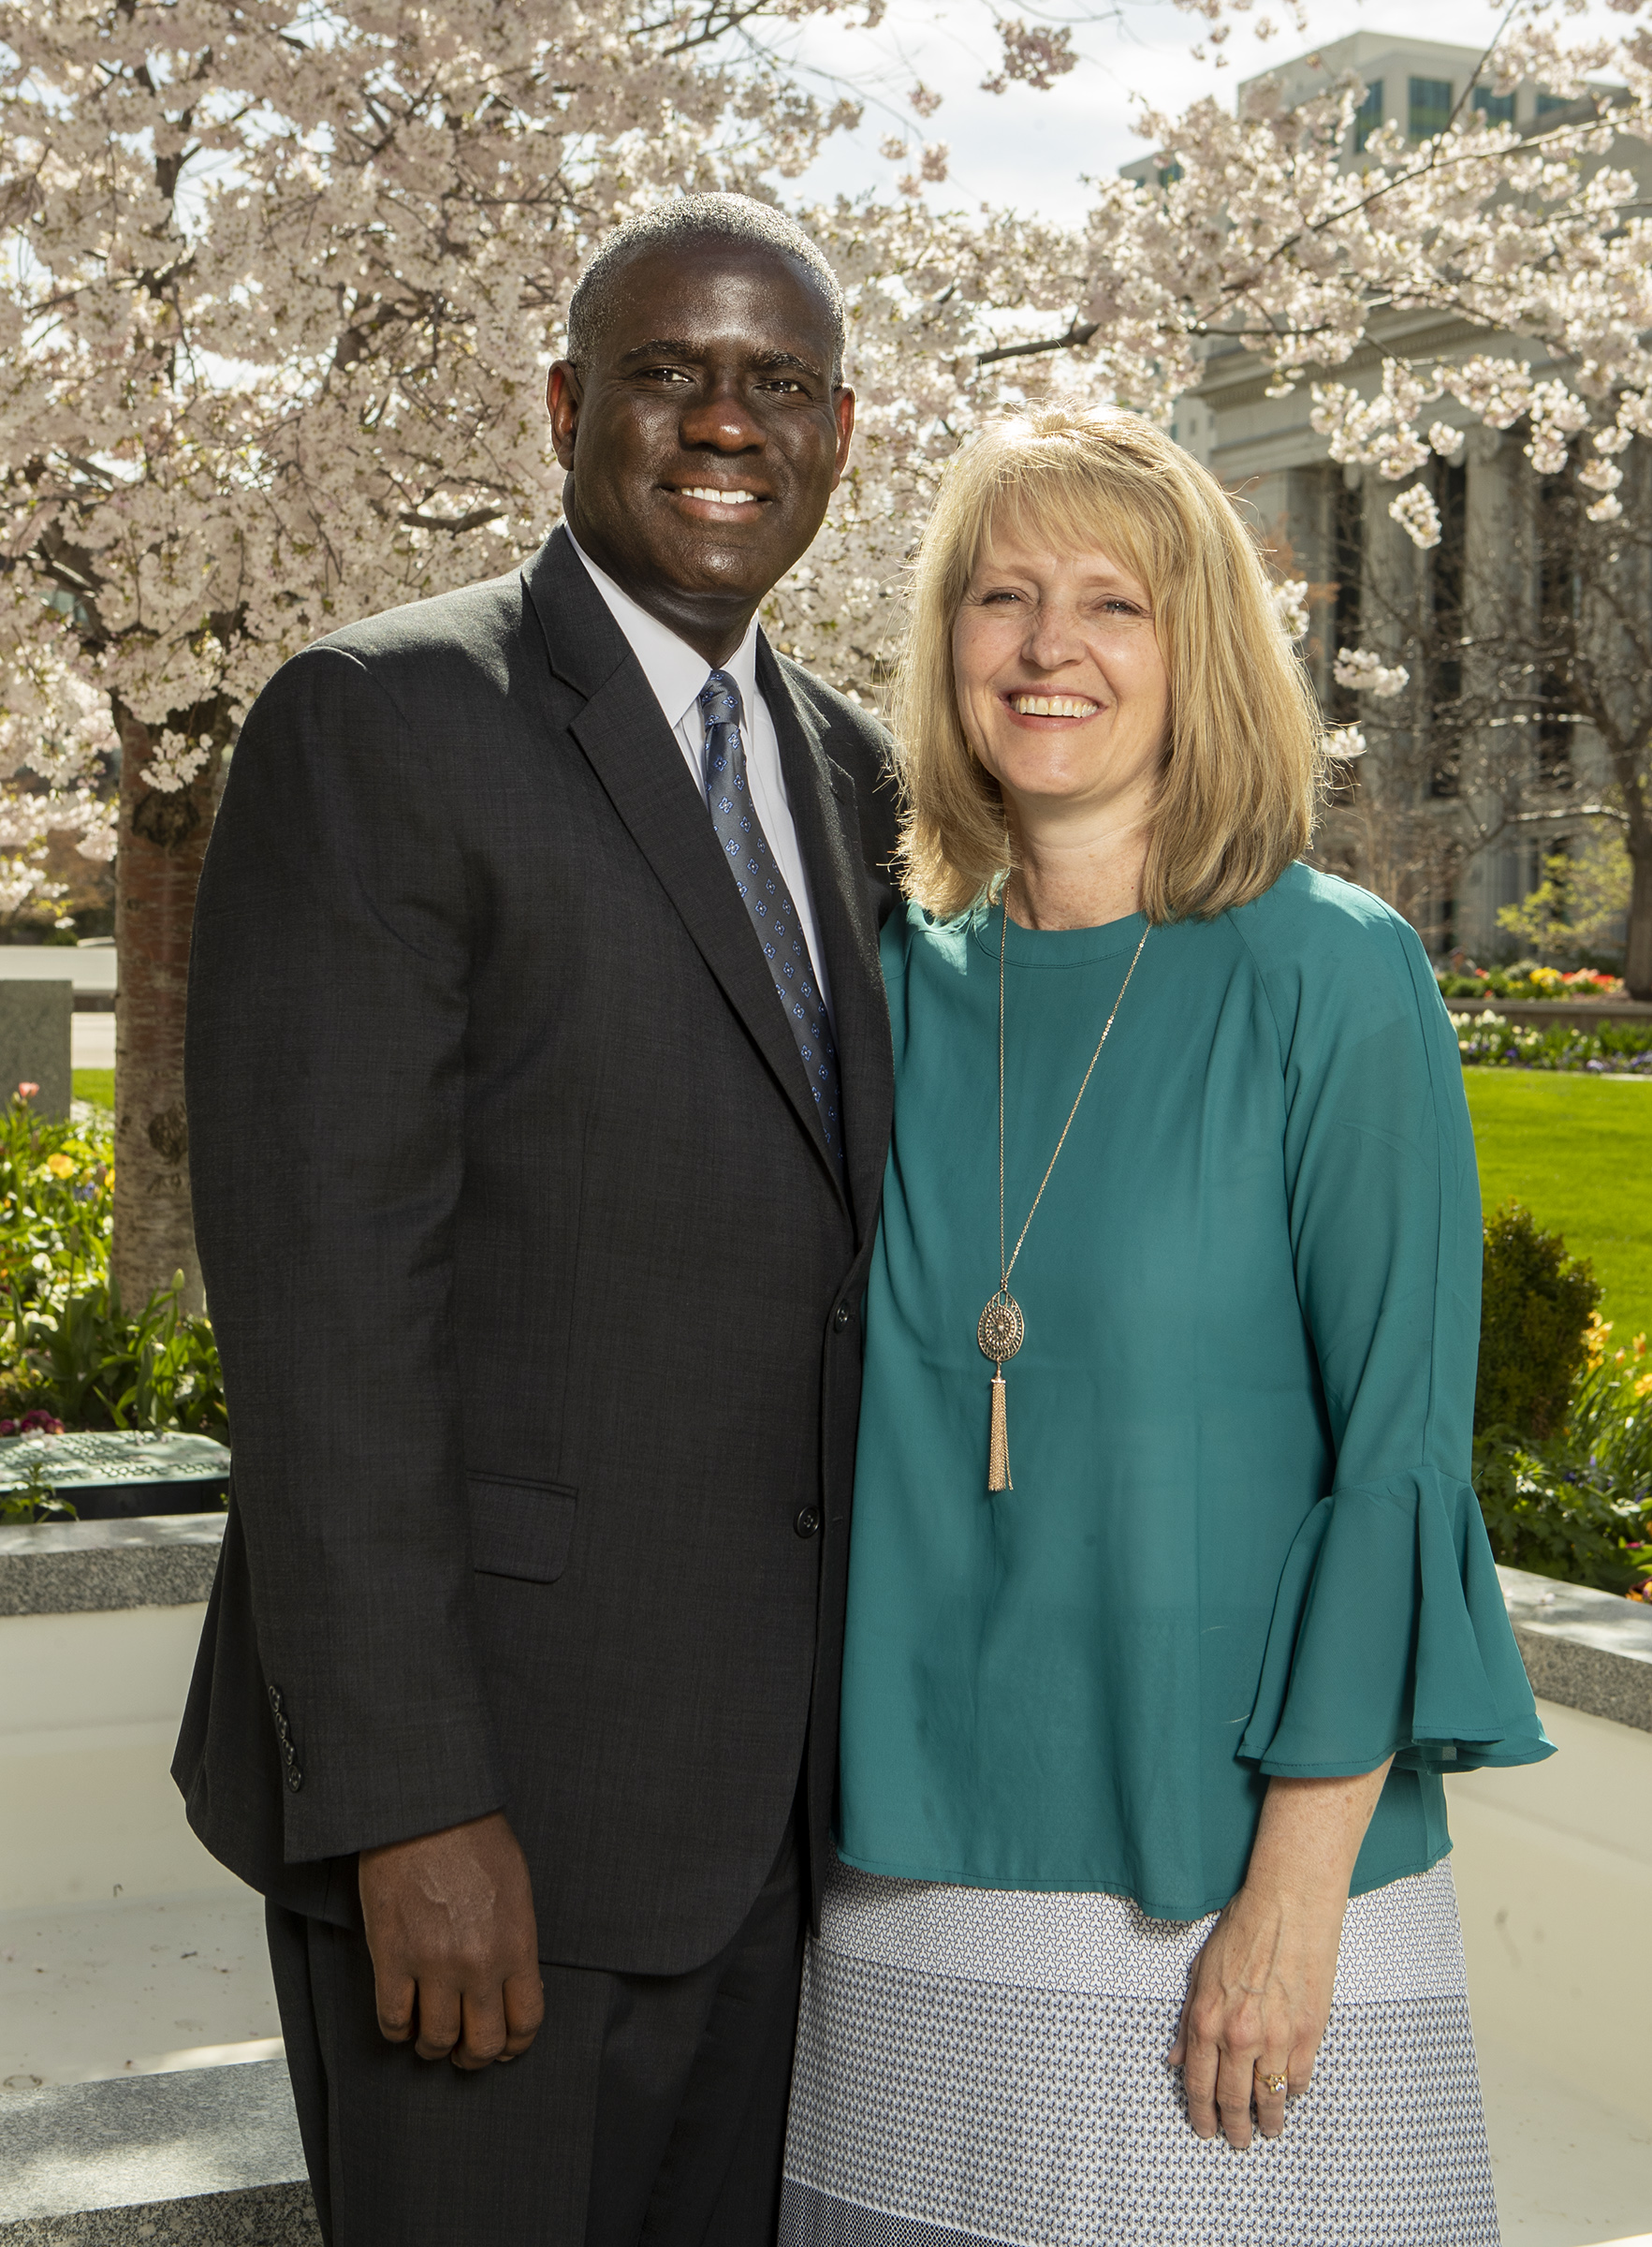 Elder Peter M. Johnson and his wife, Sister Stephanie Lyn Johnson, pose for photos at the Church Office Building in Salt Lake City on Monday, April 8, 2019. Elder Johnson was called be a General Authority Seventy in April general conference.